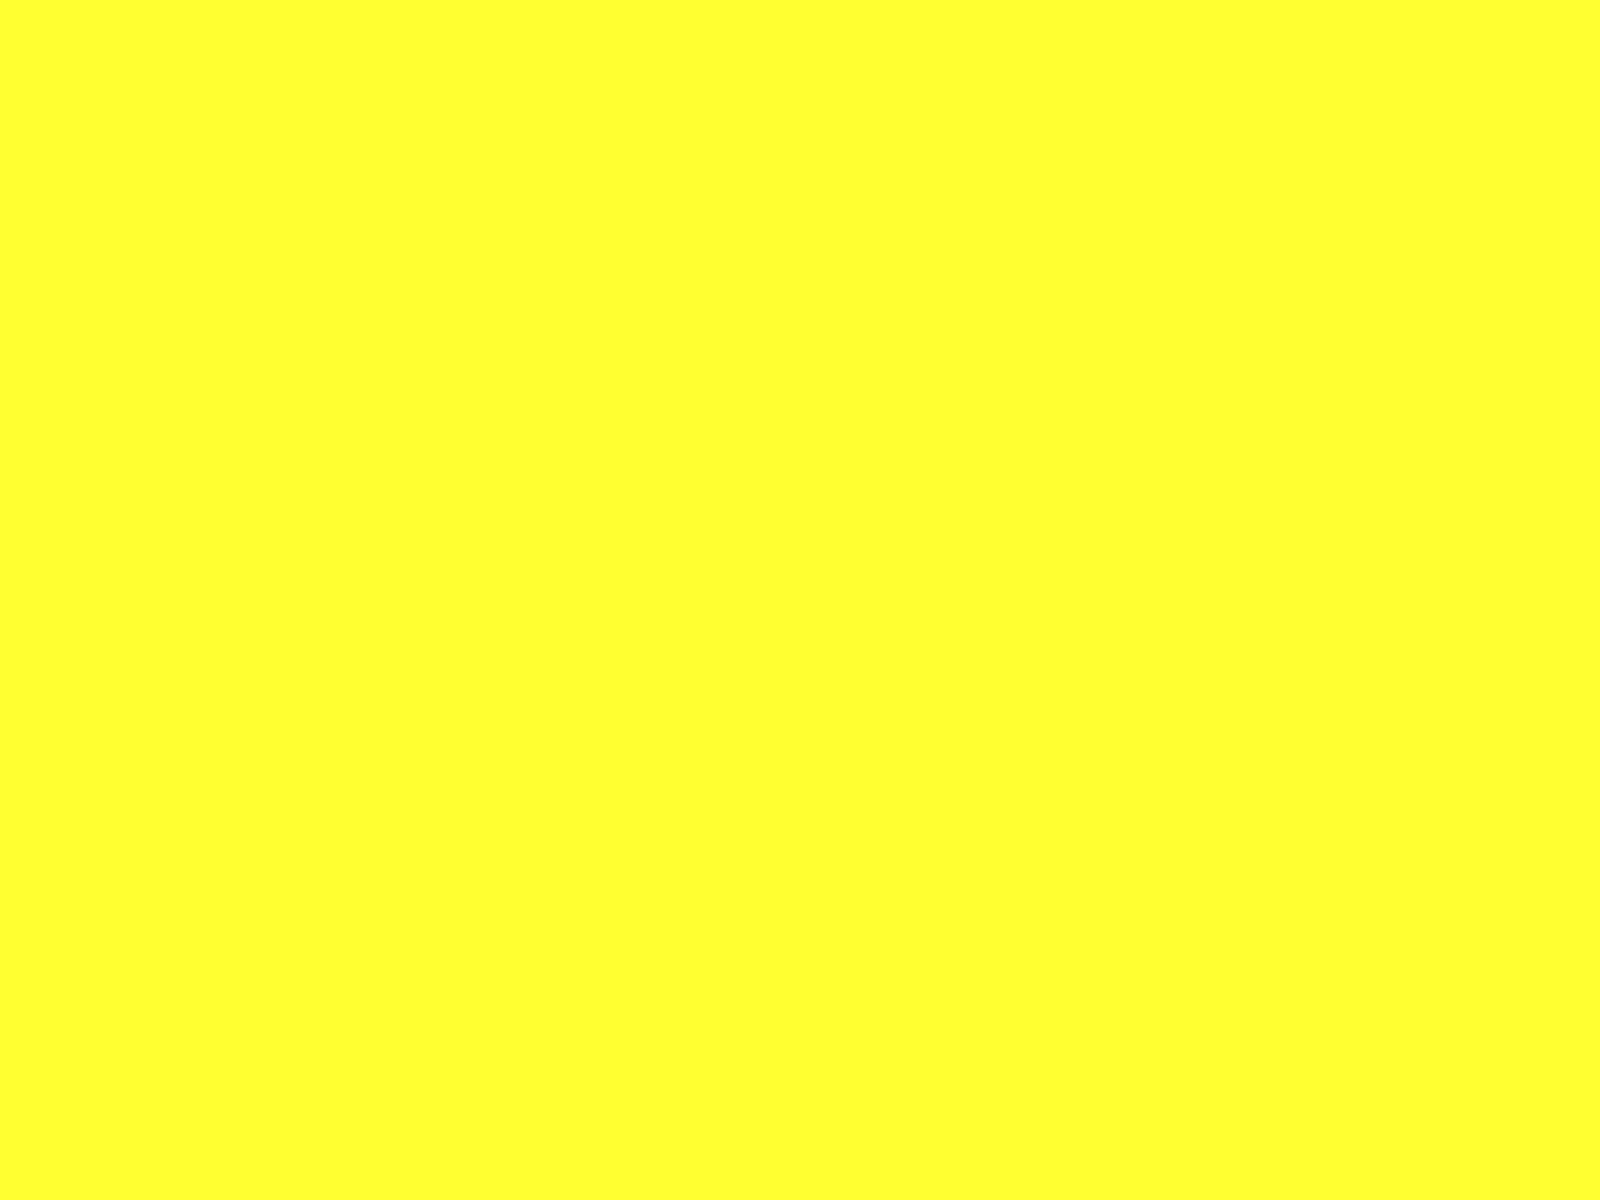 1600x1200 Daffodil Solid Color Background